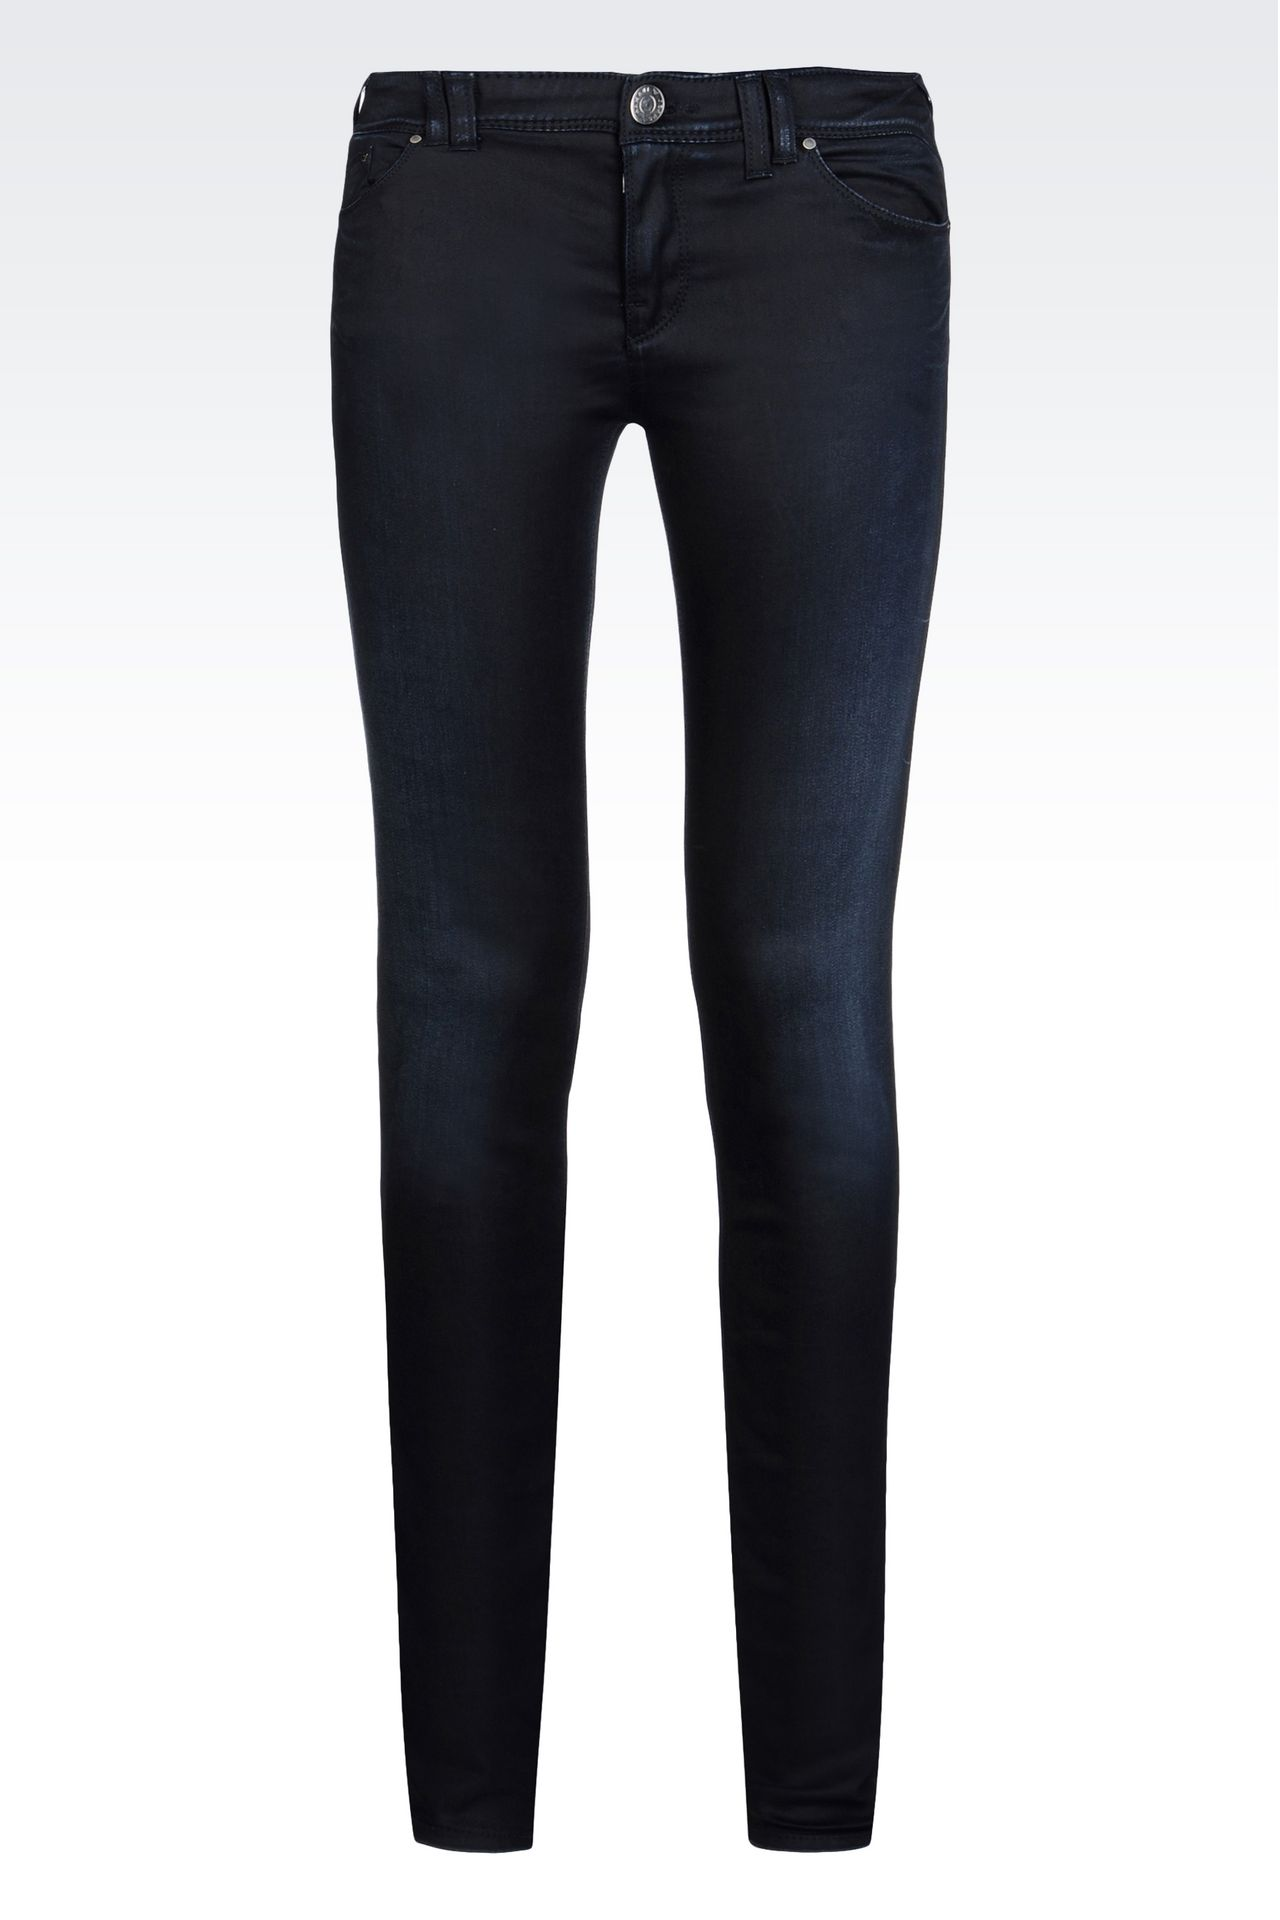 SKINNY LEATHER EFFECT JEANS: 5 pockets Women by Armani - 0